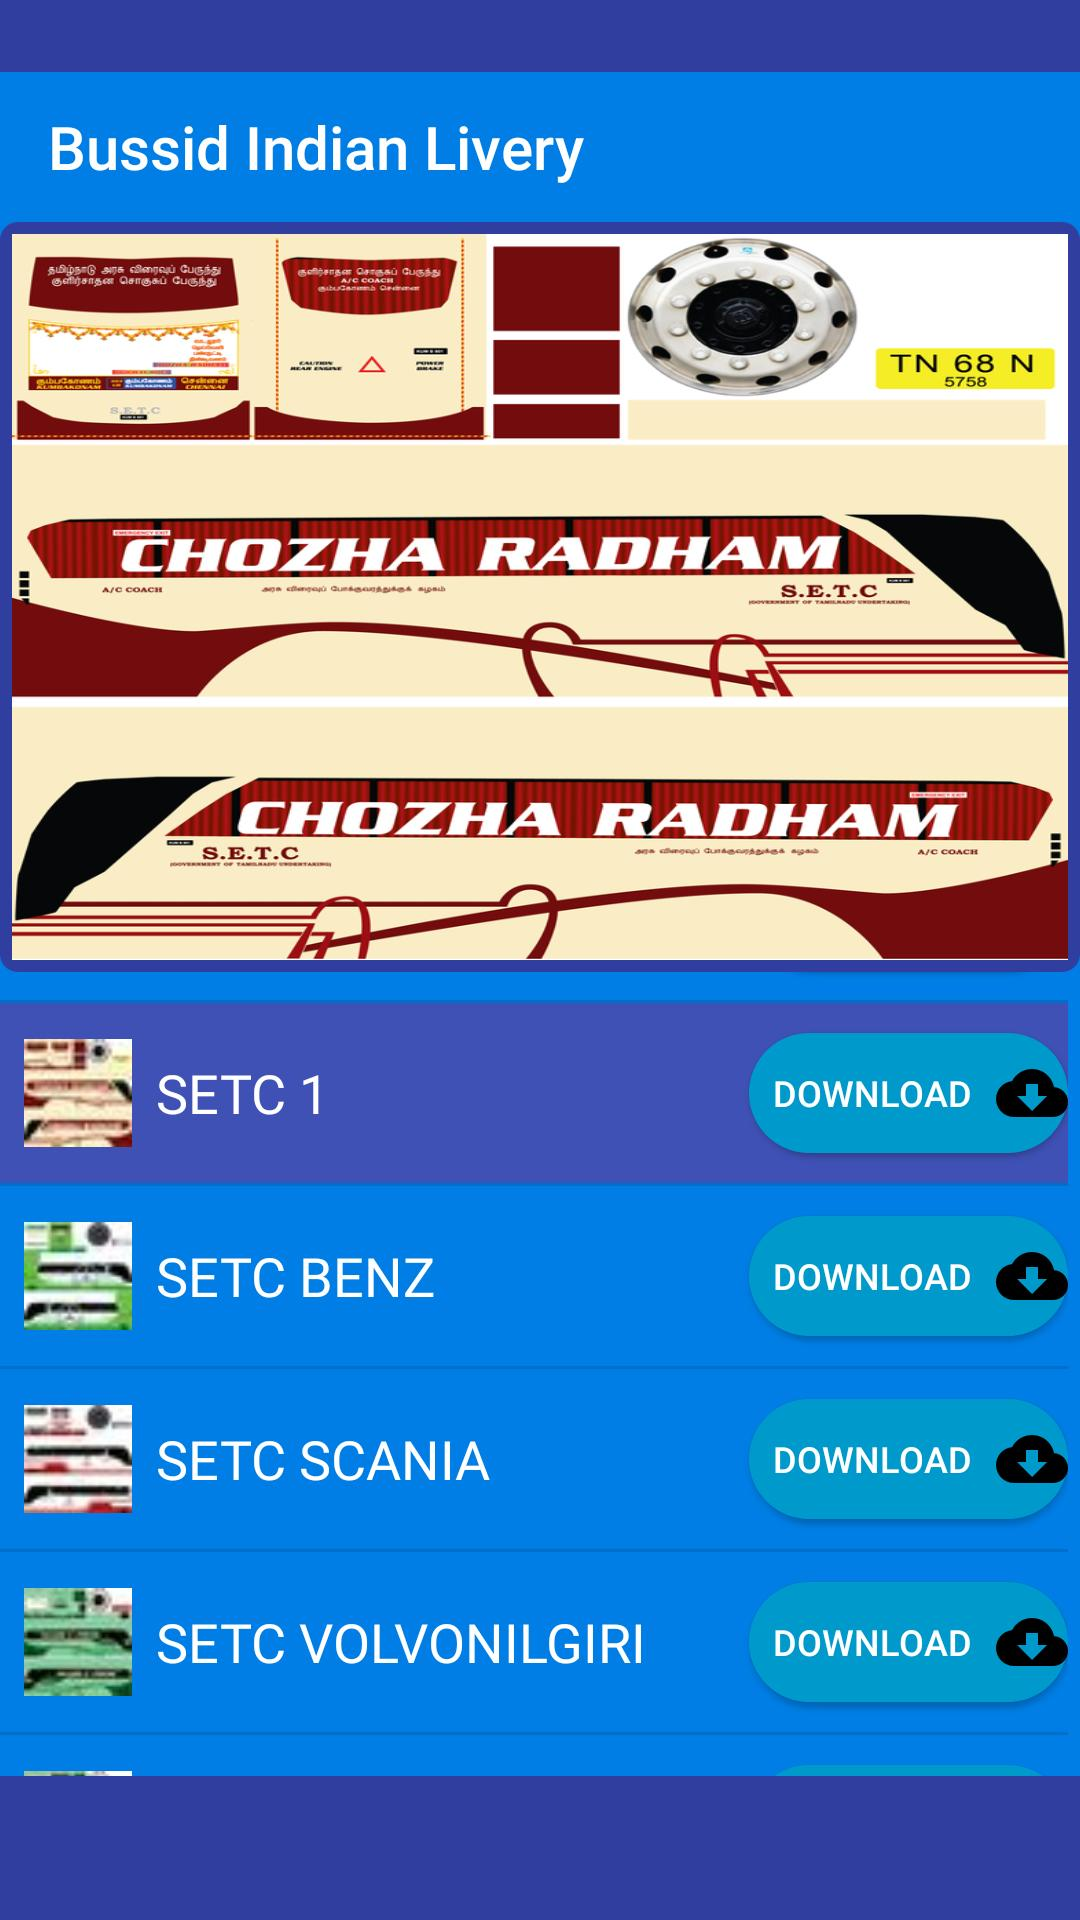 Bussid Indian Livery for Android - APK Download